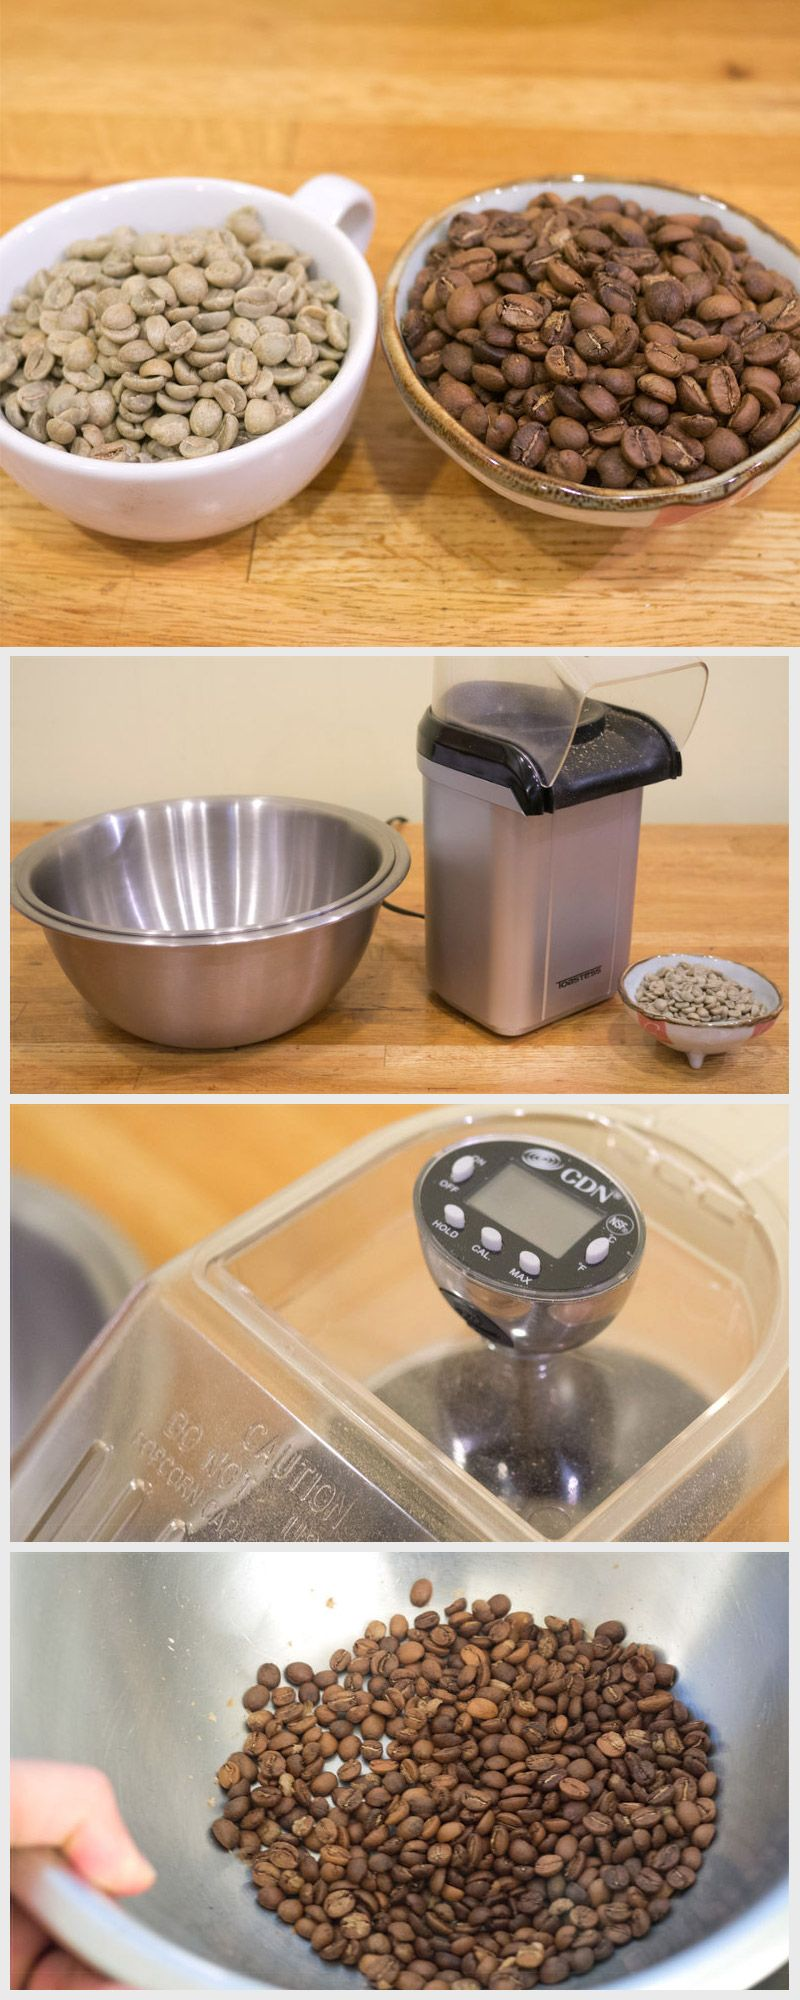 Roast Your Own Coffee With a Popcorn Popper Food